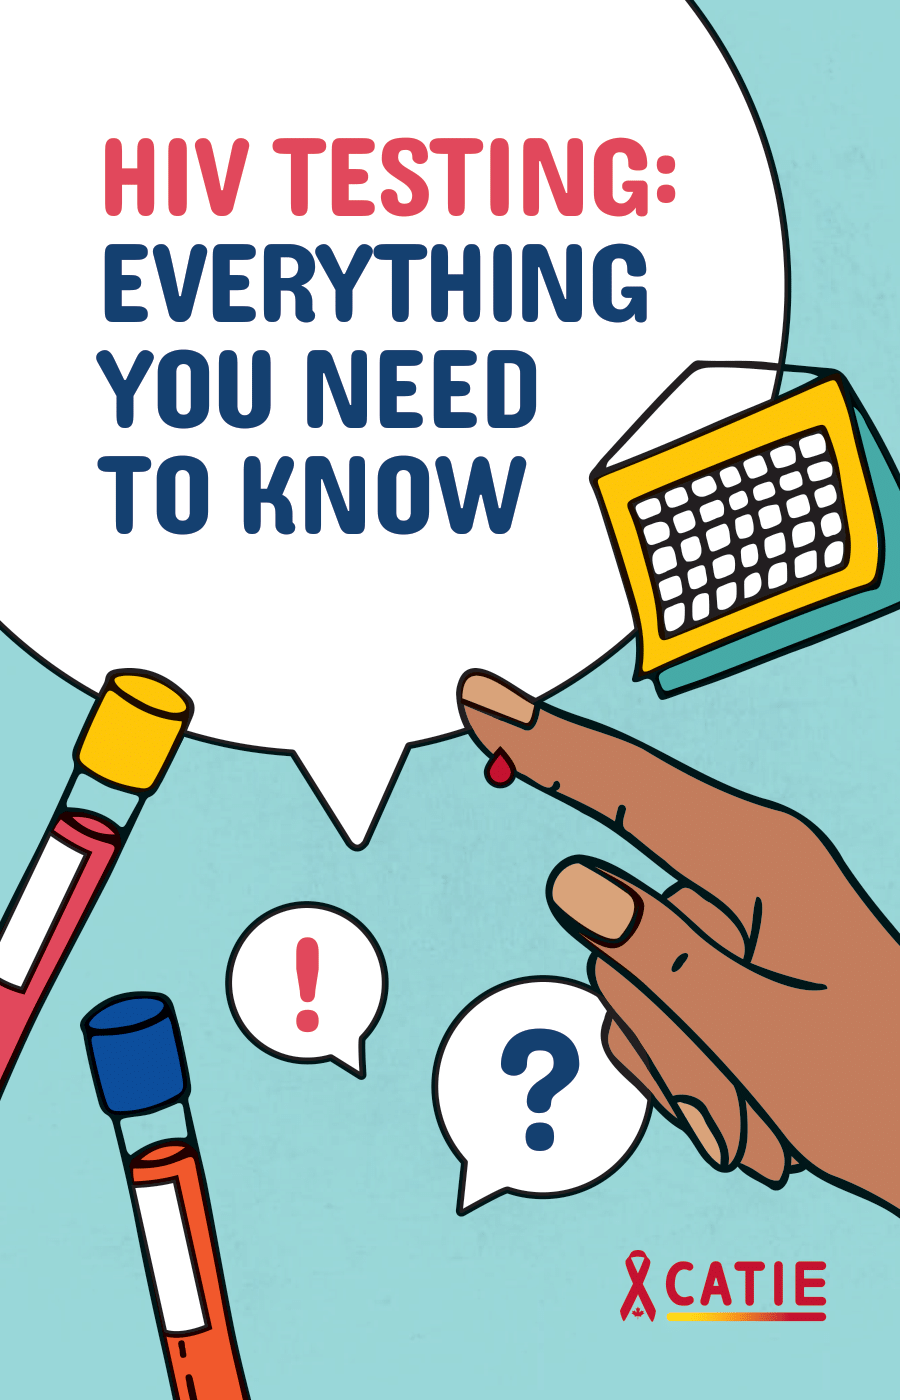 HIV Testing: Everything you need to know